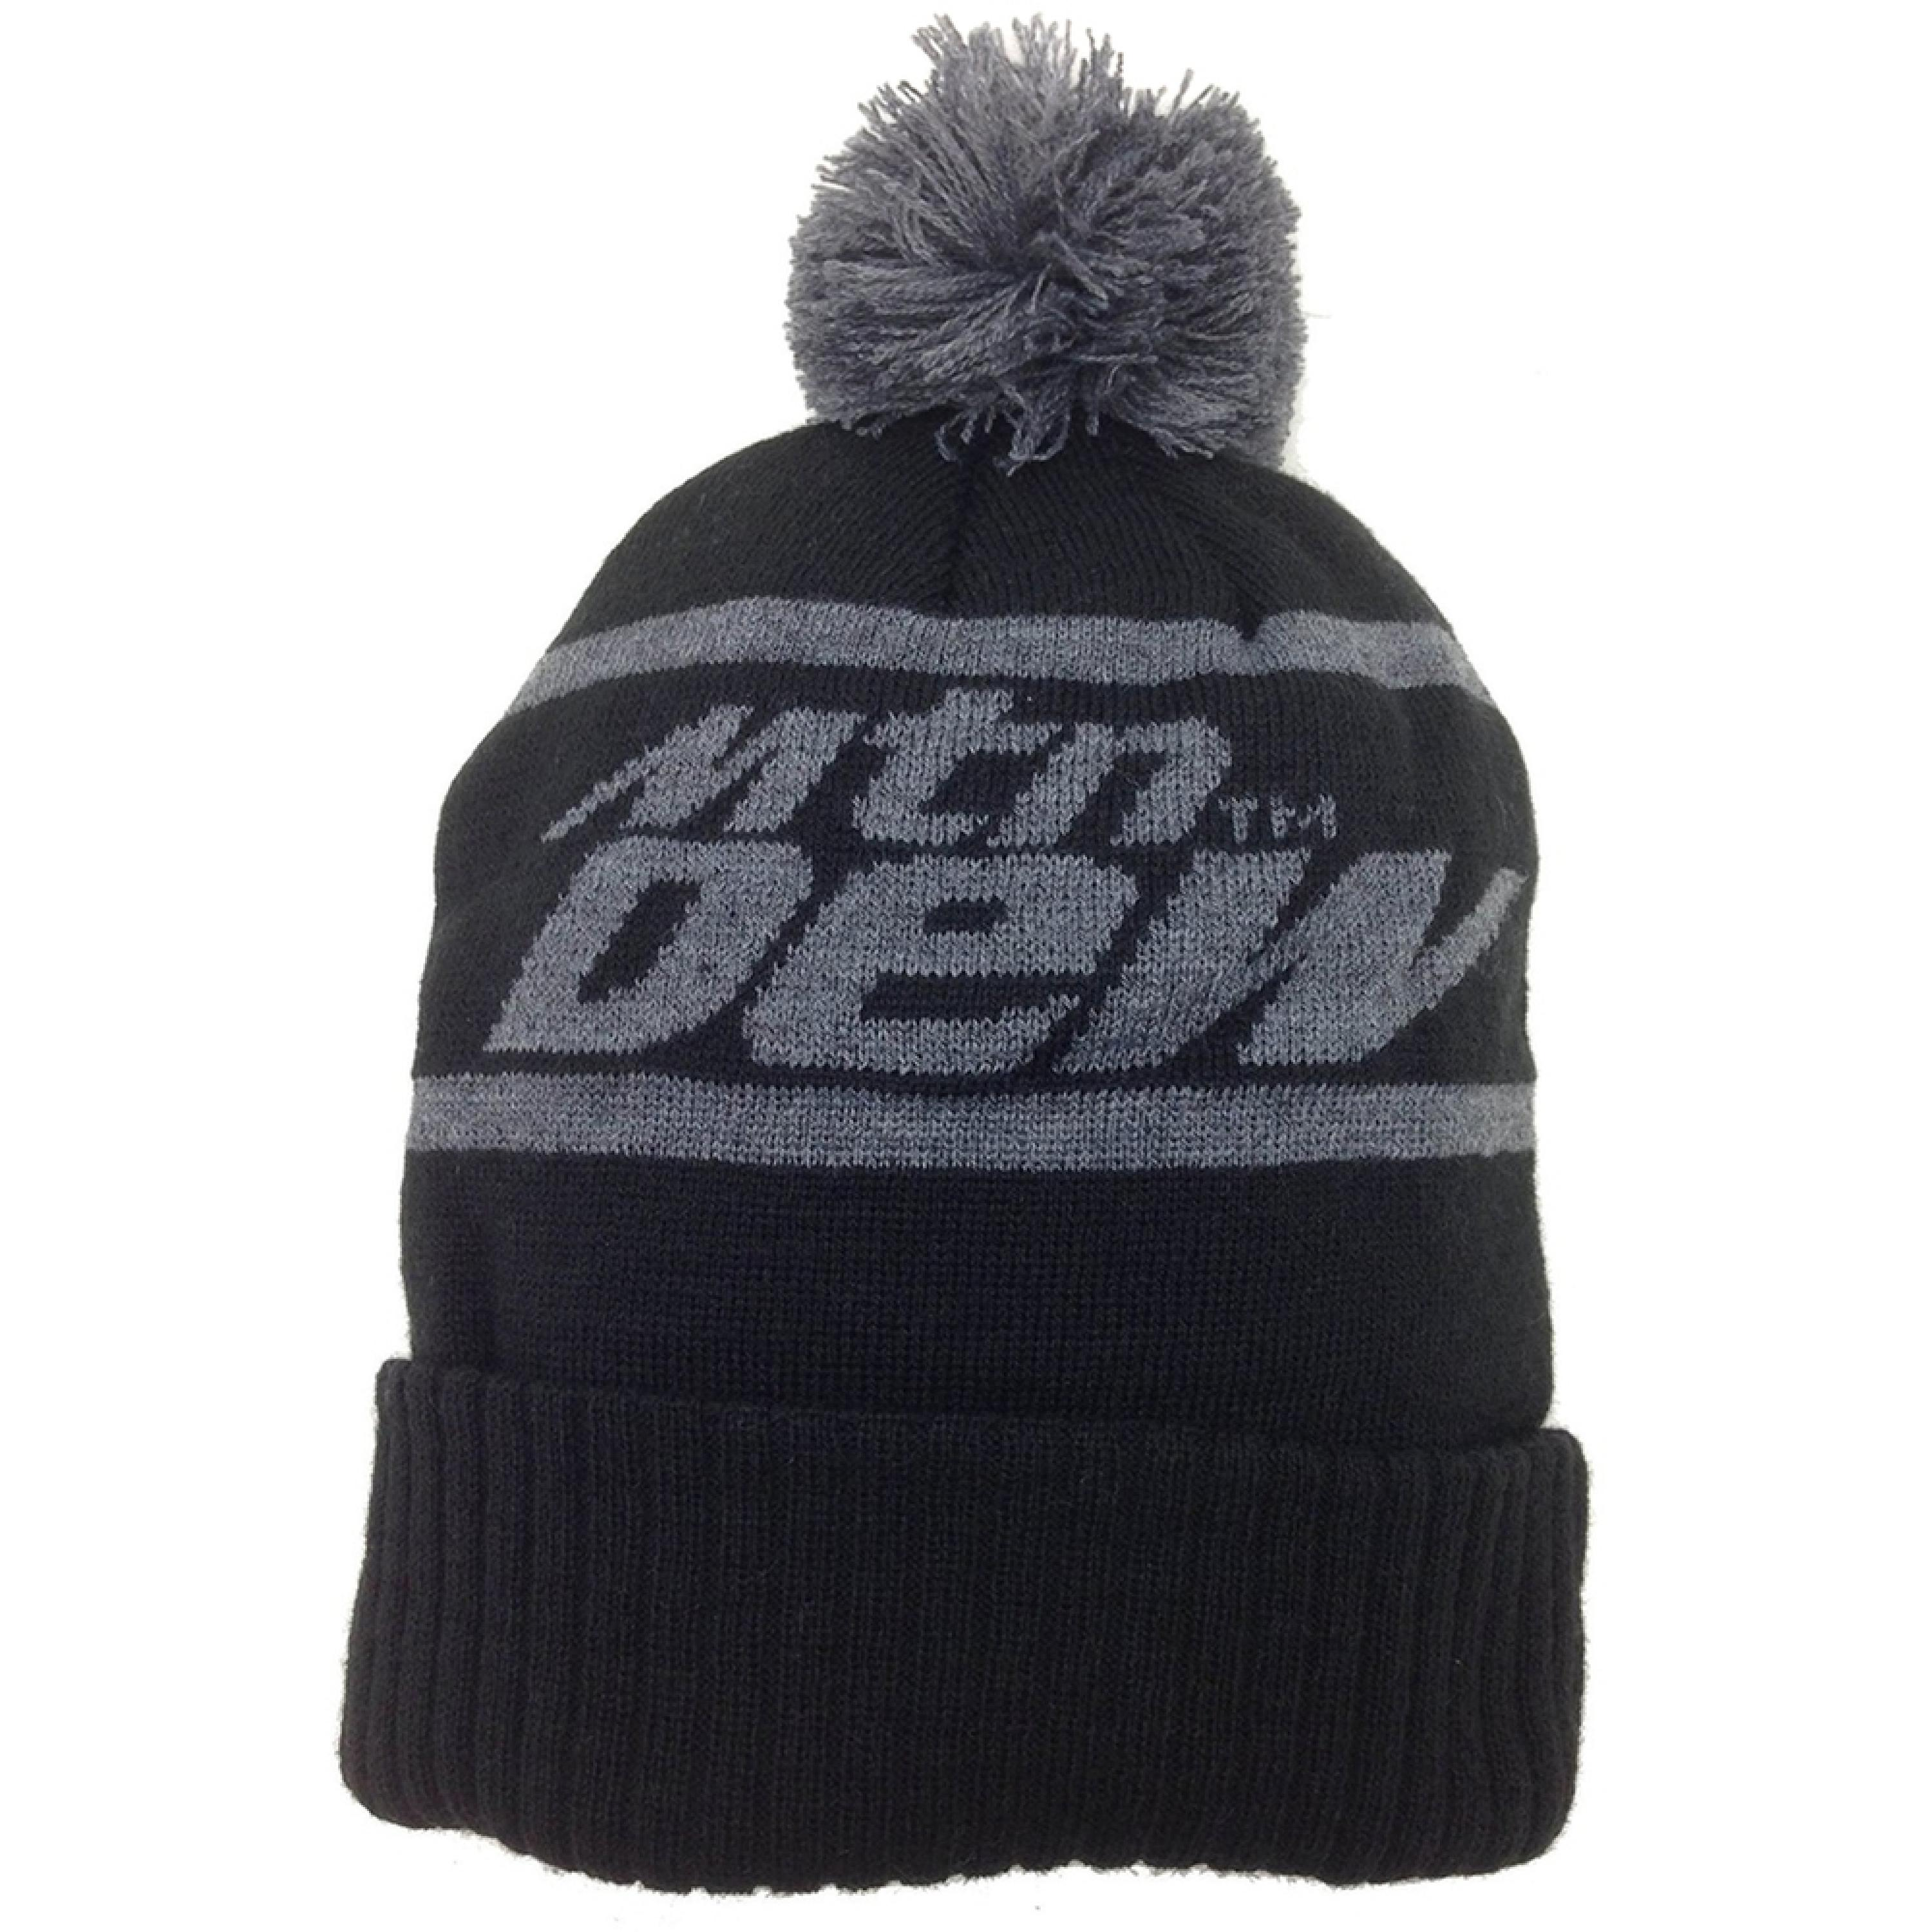 Mountain Dew - New Logo Pom Pom Knit Hat